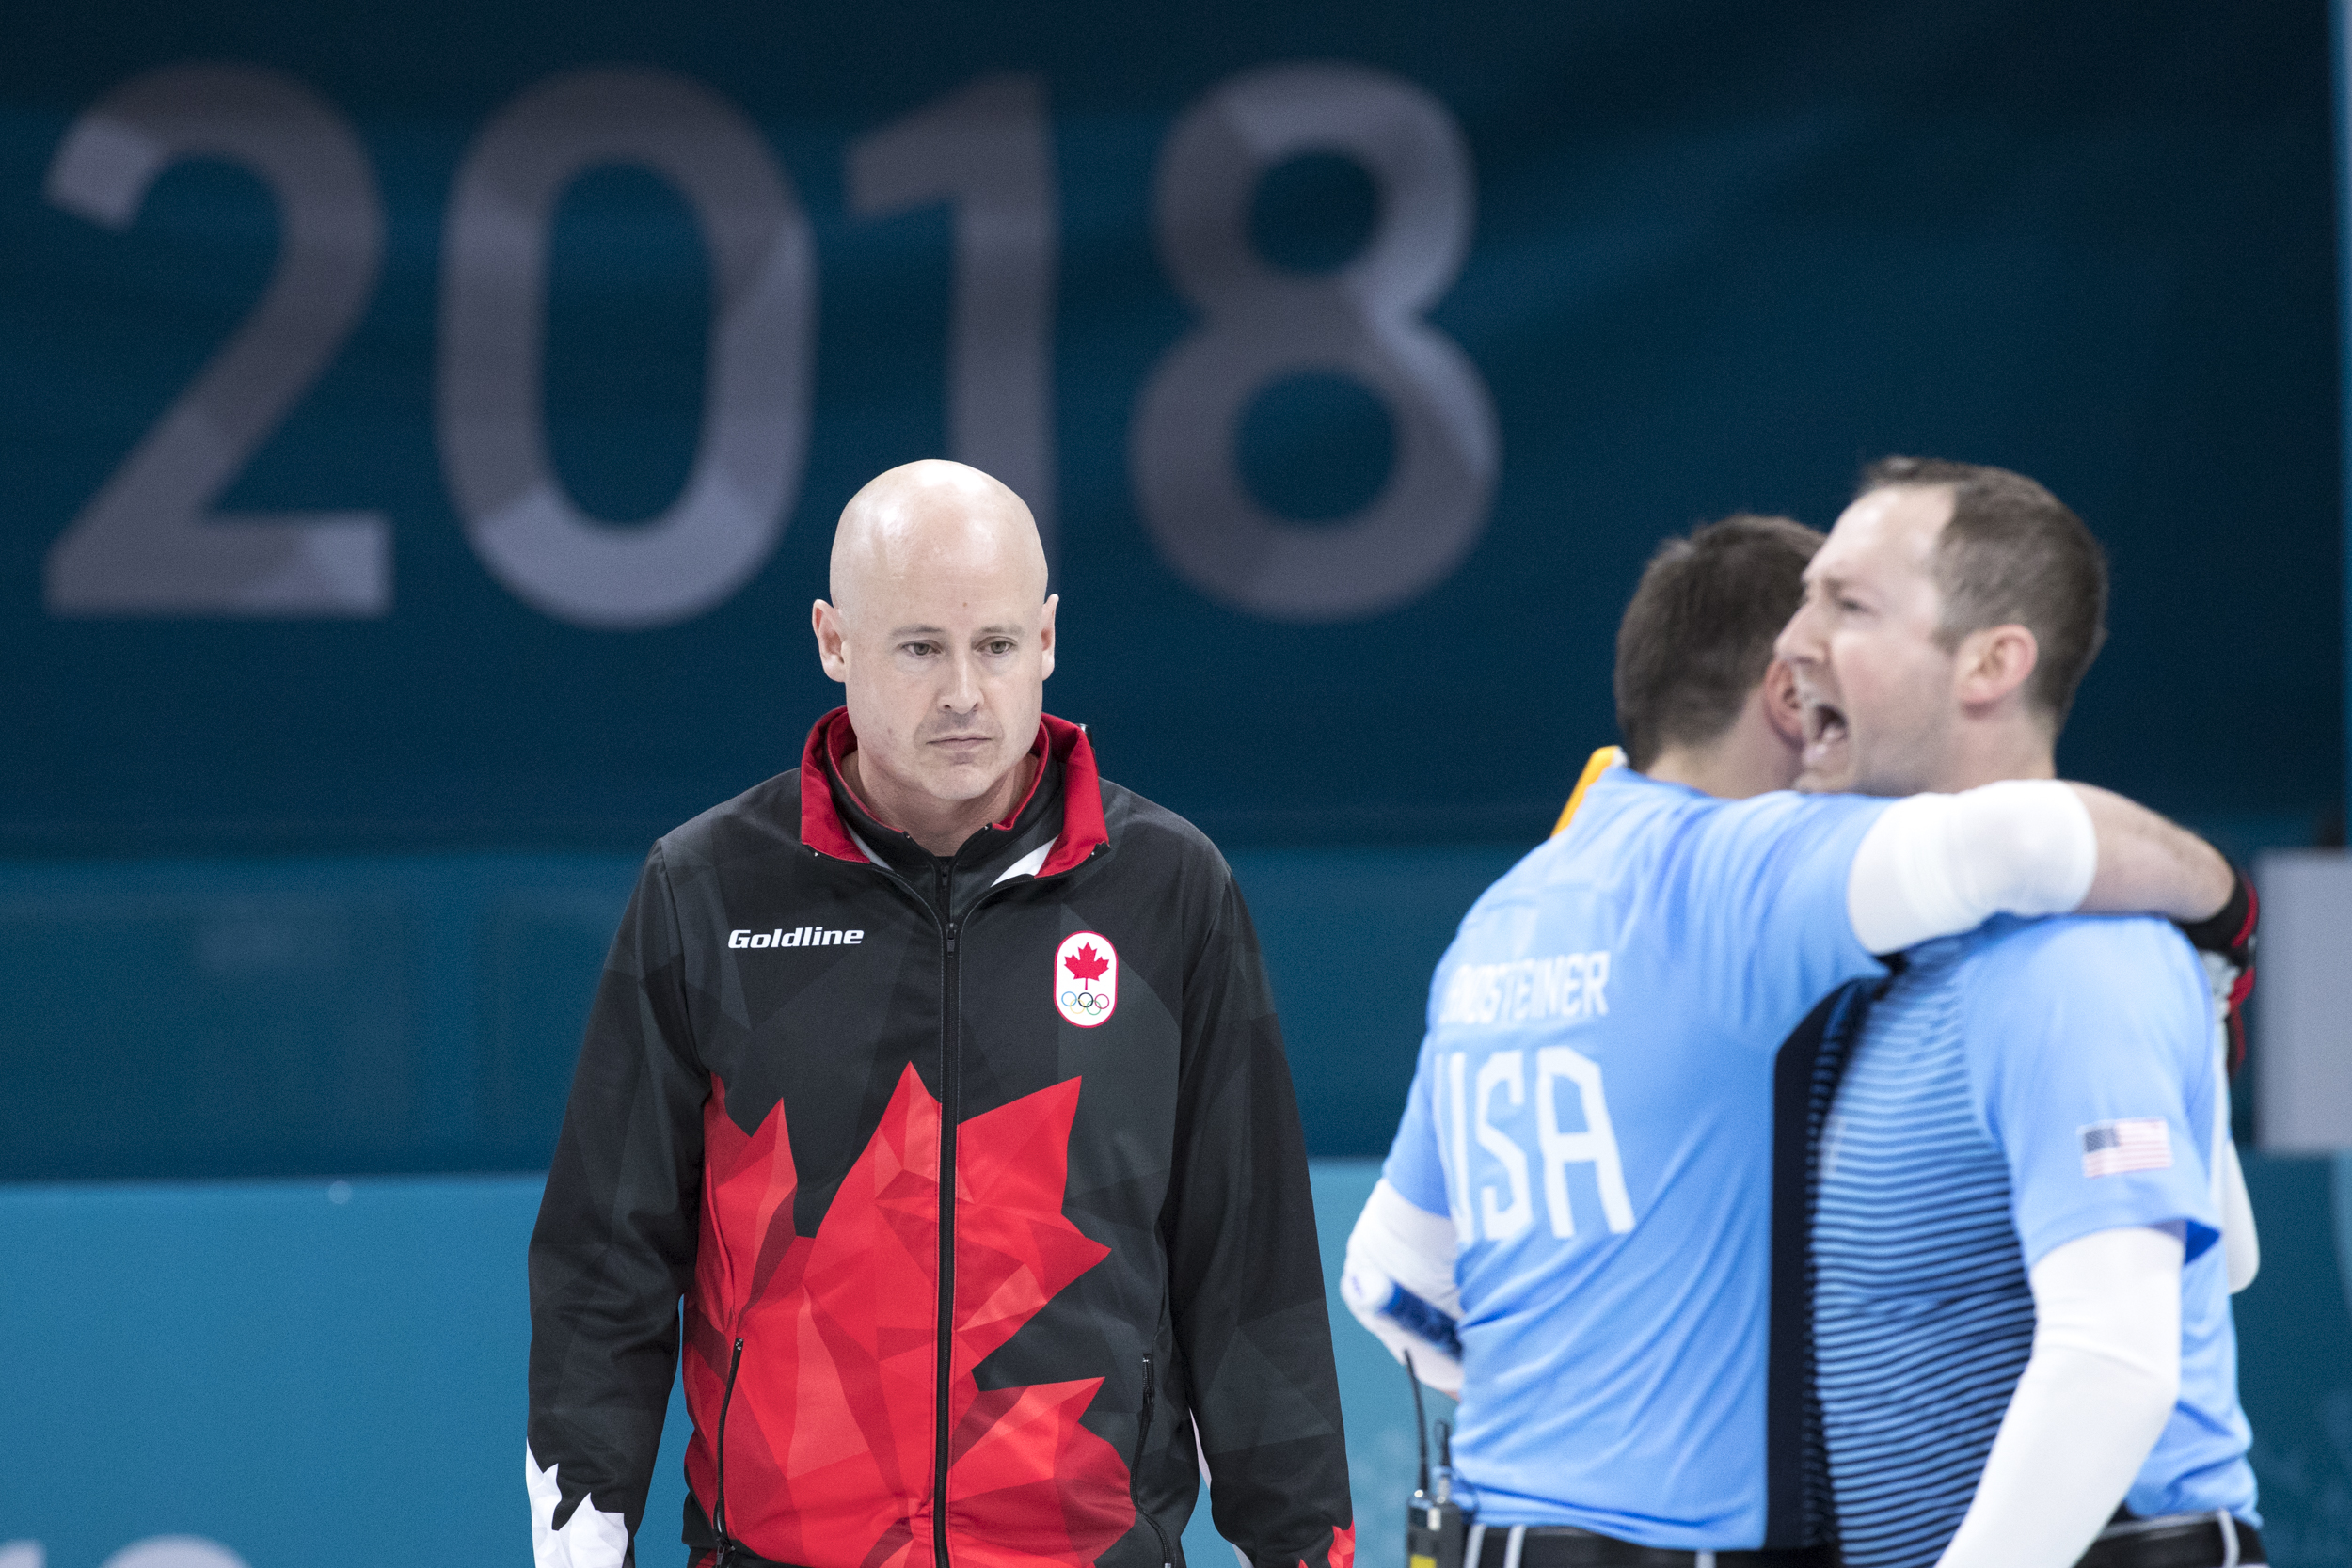 Team Canada's four man Curling team of Kevin Koe, Brent Laing, Ben Herbert, and Marc Kennedy lose in the Semifinal to the United States in the Gangneung Curling Centre at PyeongChang 2018 Olympic Winter Games in Gangneung, South Korea, Thursday, February 22, 2018. COC – David Jackson